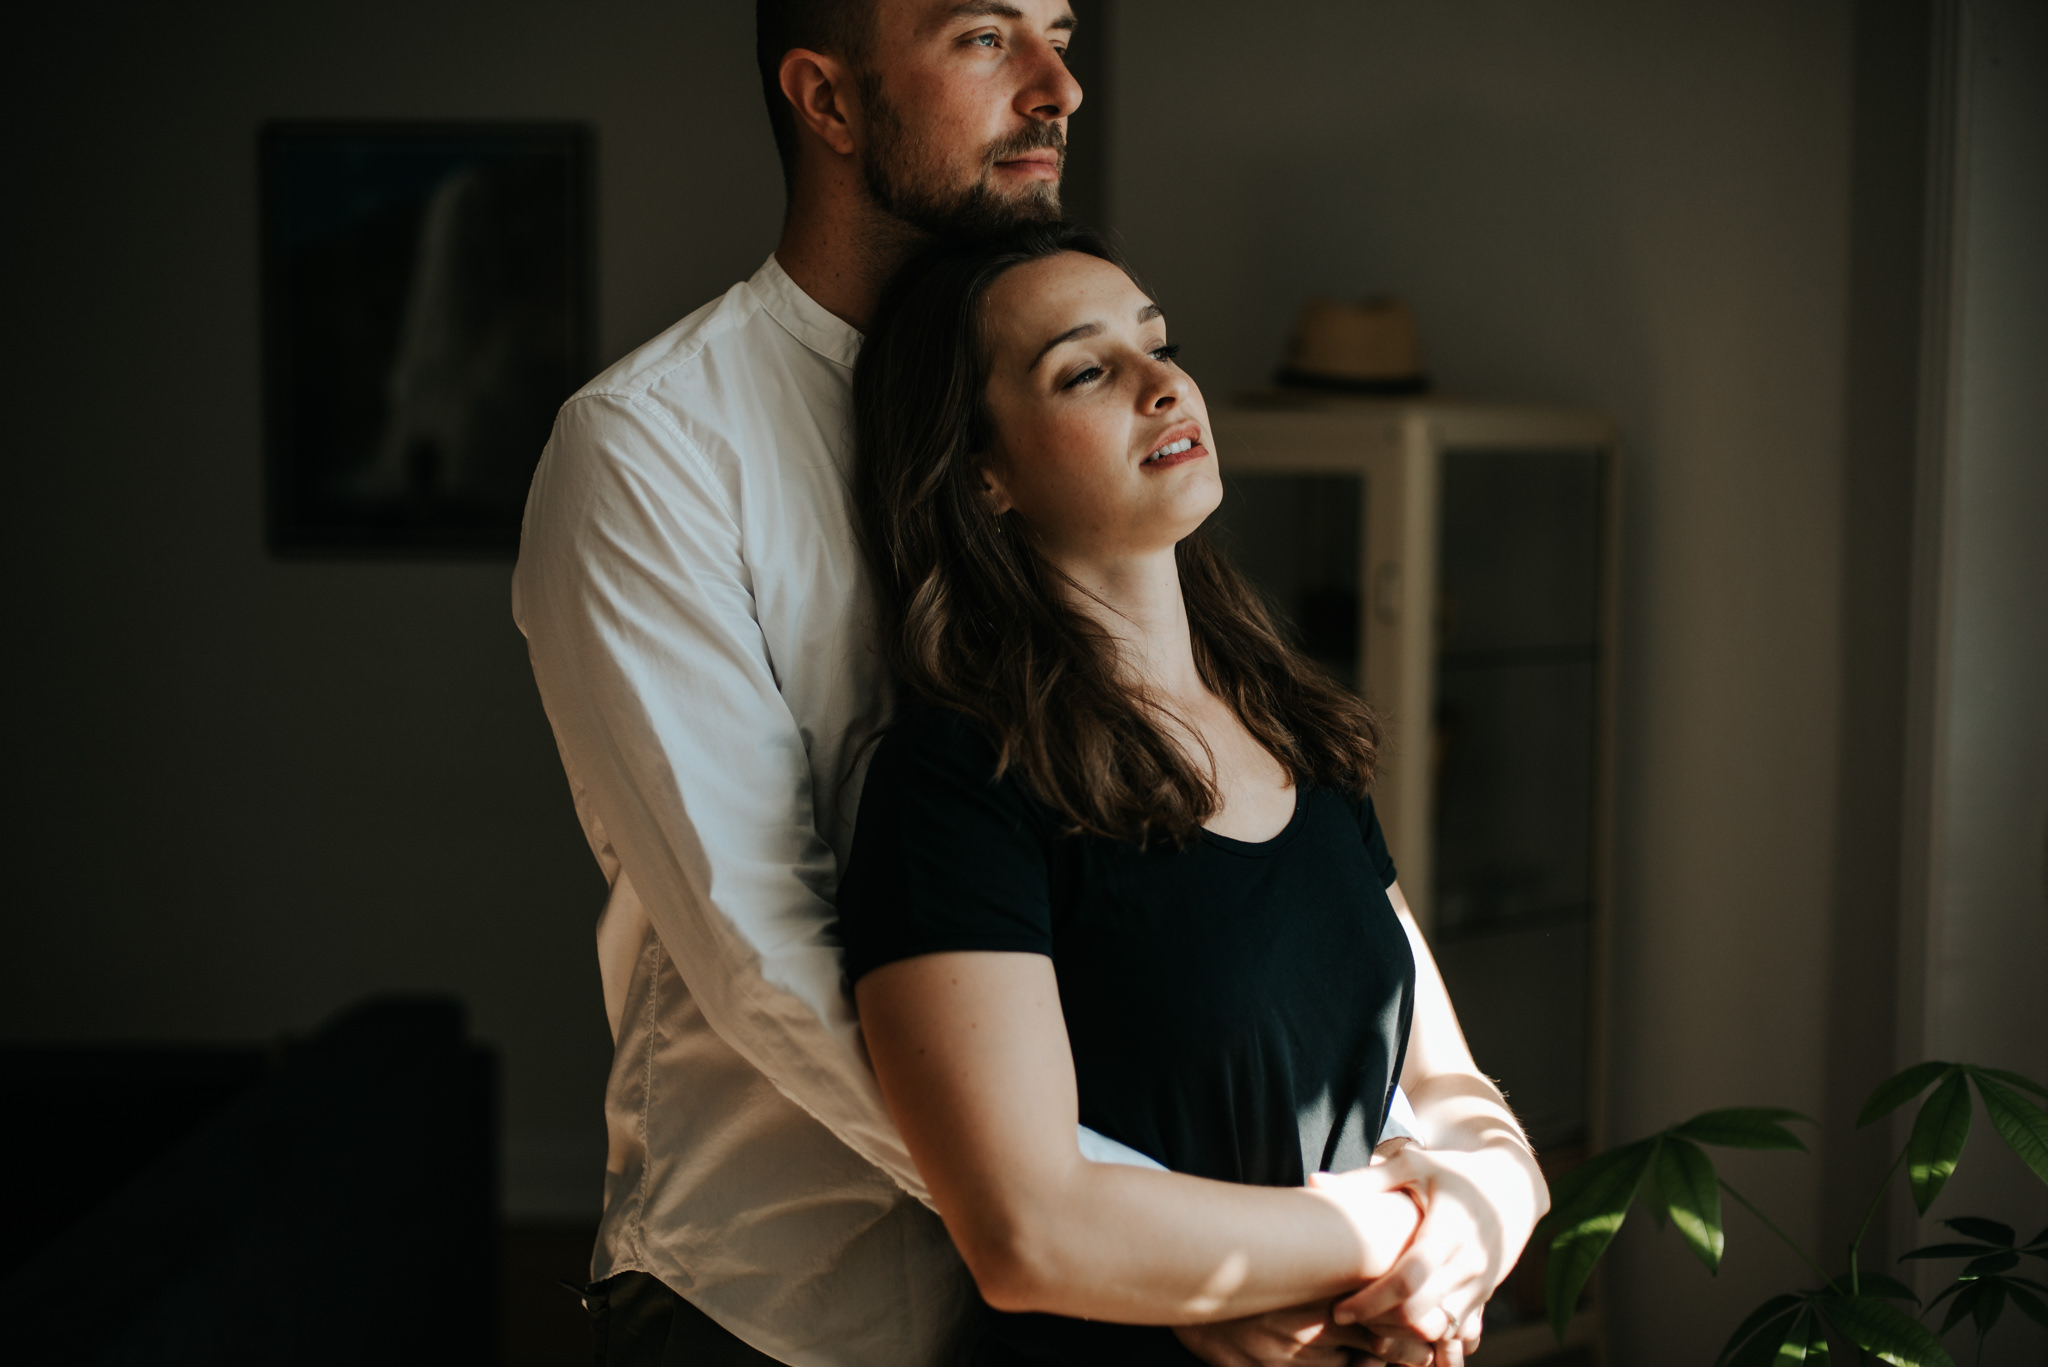 Intimate moment between young couple as they hug by window in living room